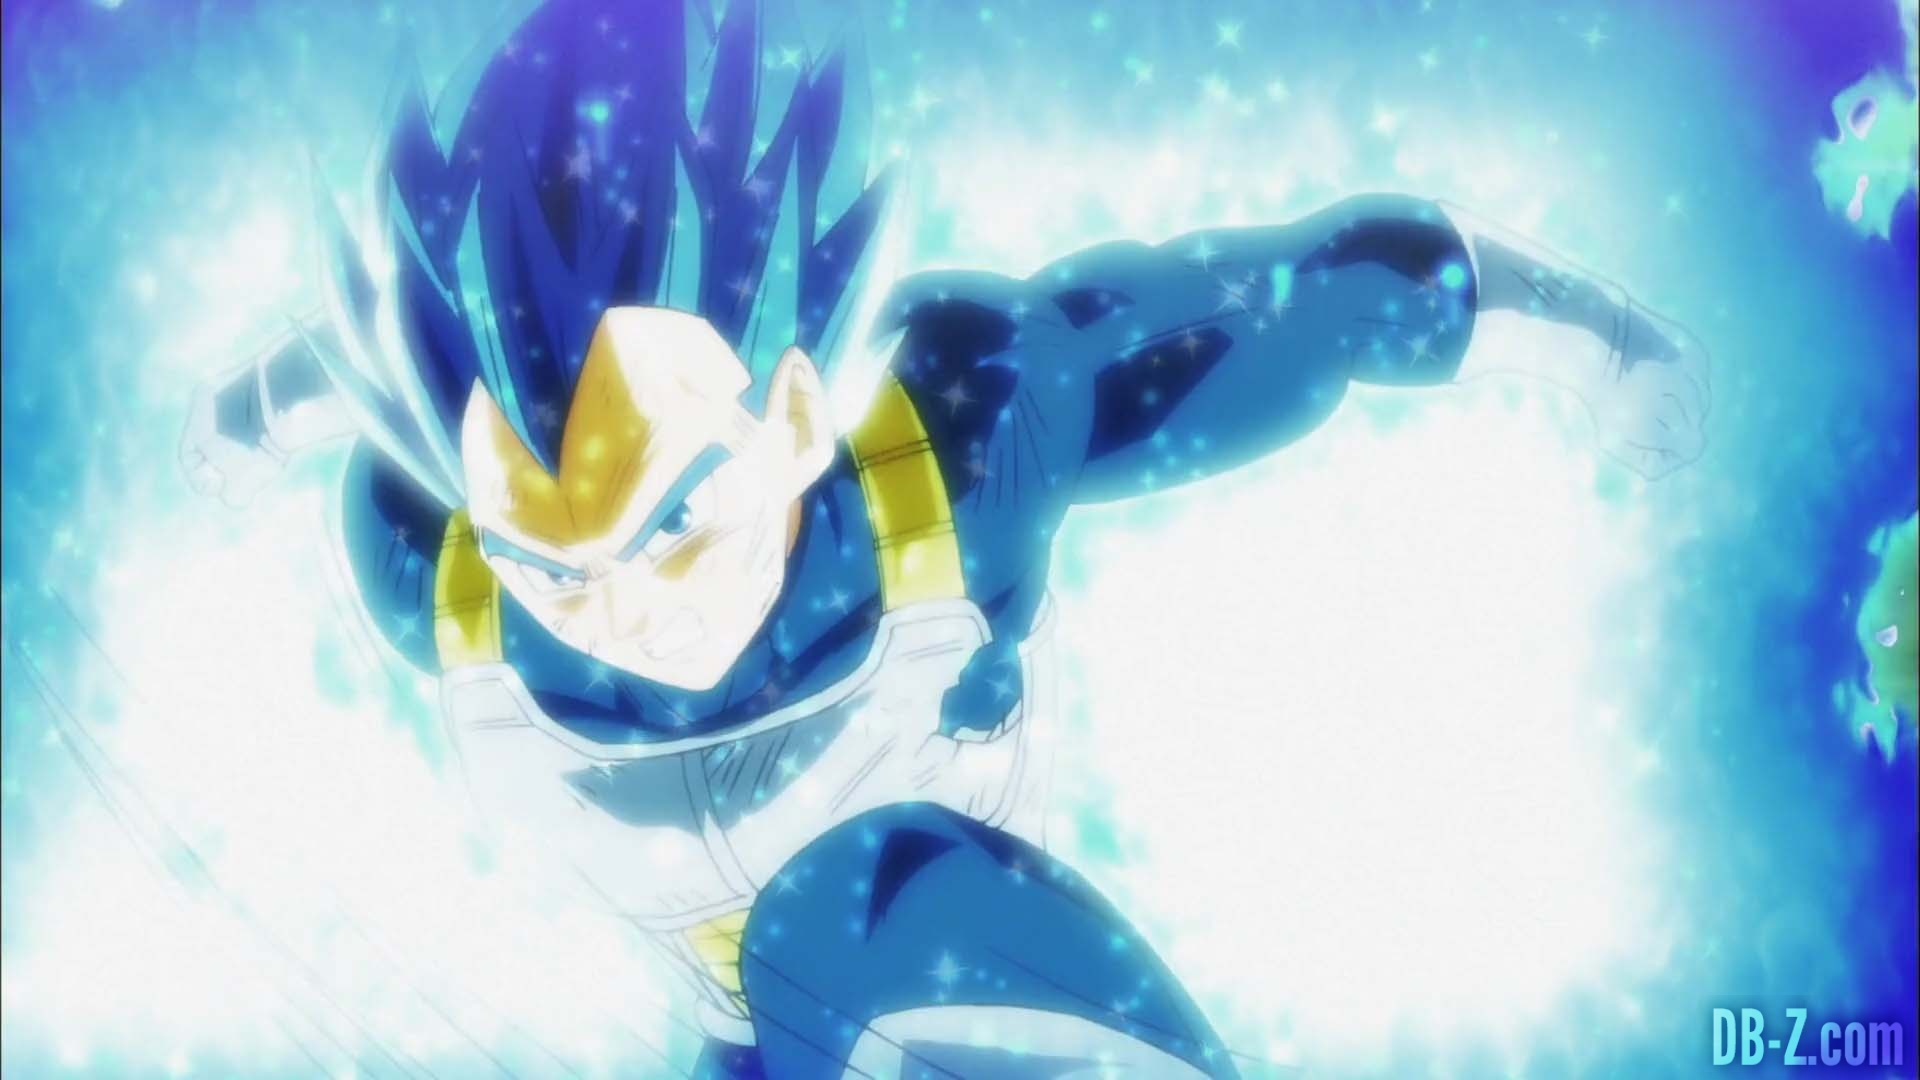 Dragon Ball Super Episode 124 0013 Vegeta Ultra Instinct 1920x1080